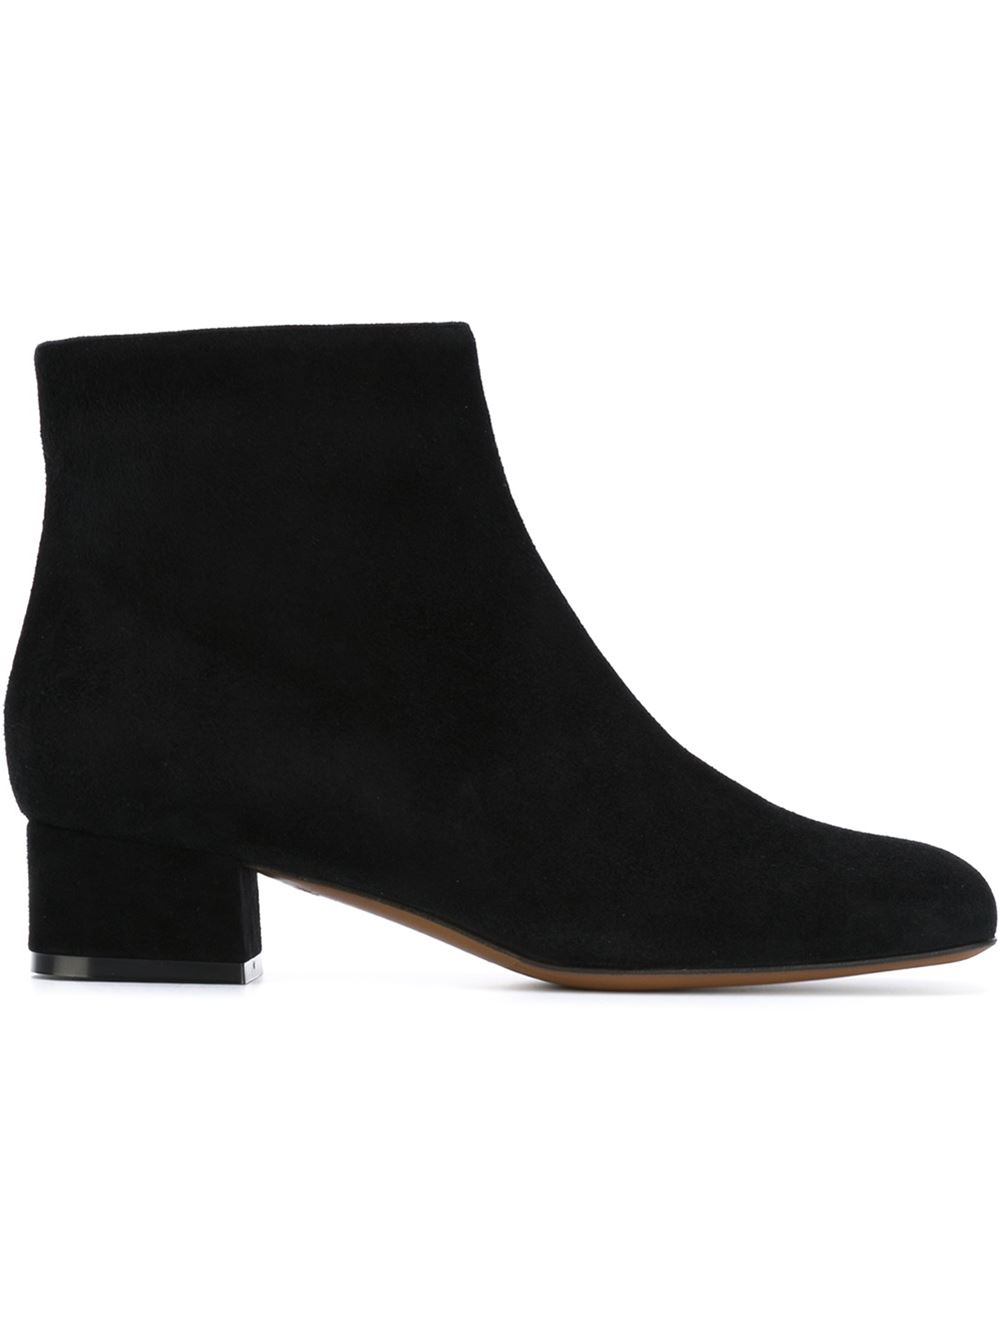 L\'autre chose Low Heel Ankle Boots in Black | Lyst